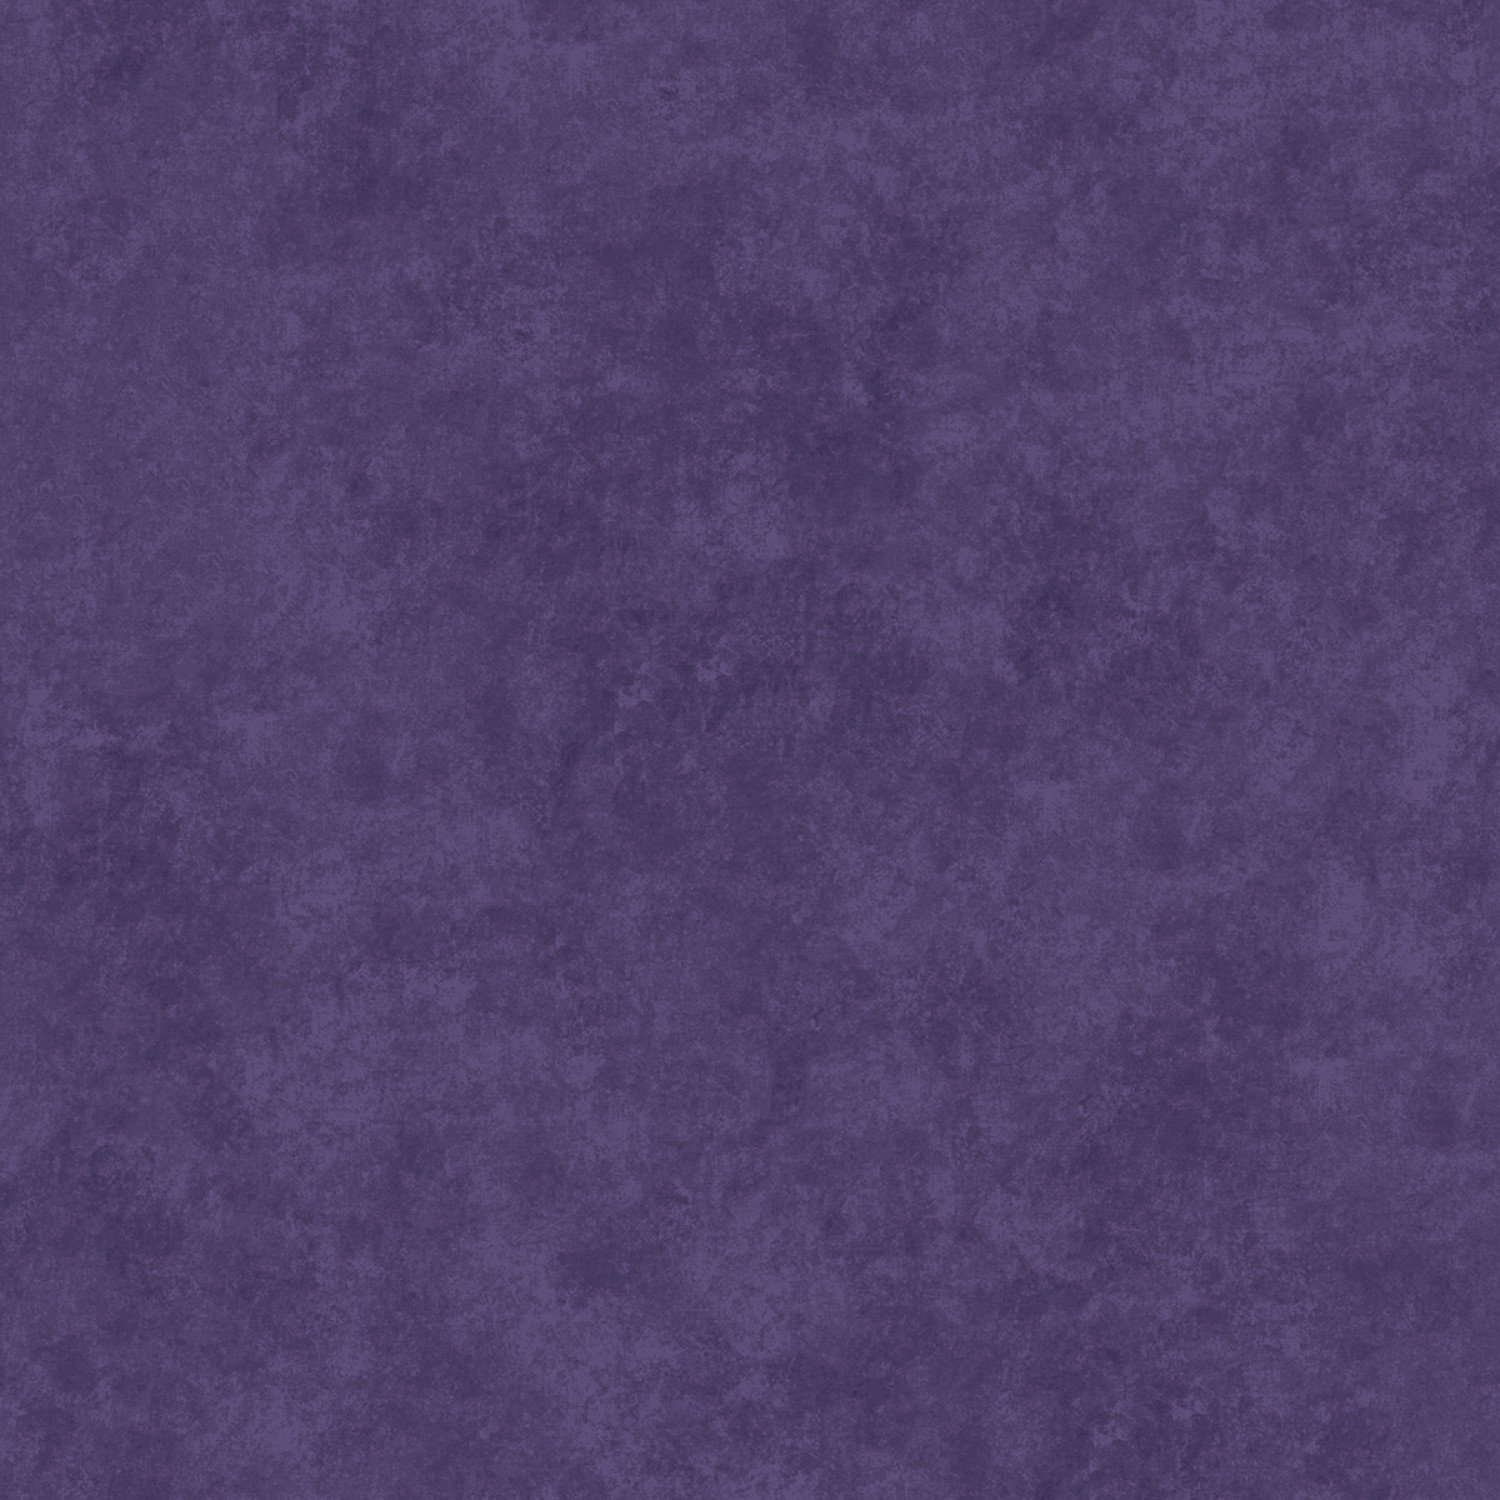 23850 Suede Look Texture Backing 108 Wide Purple